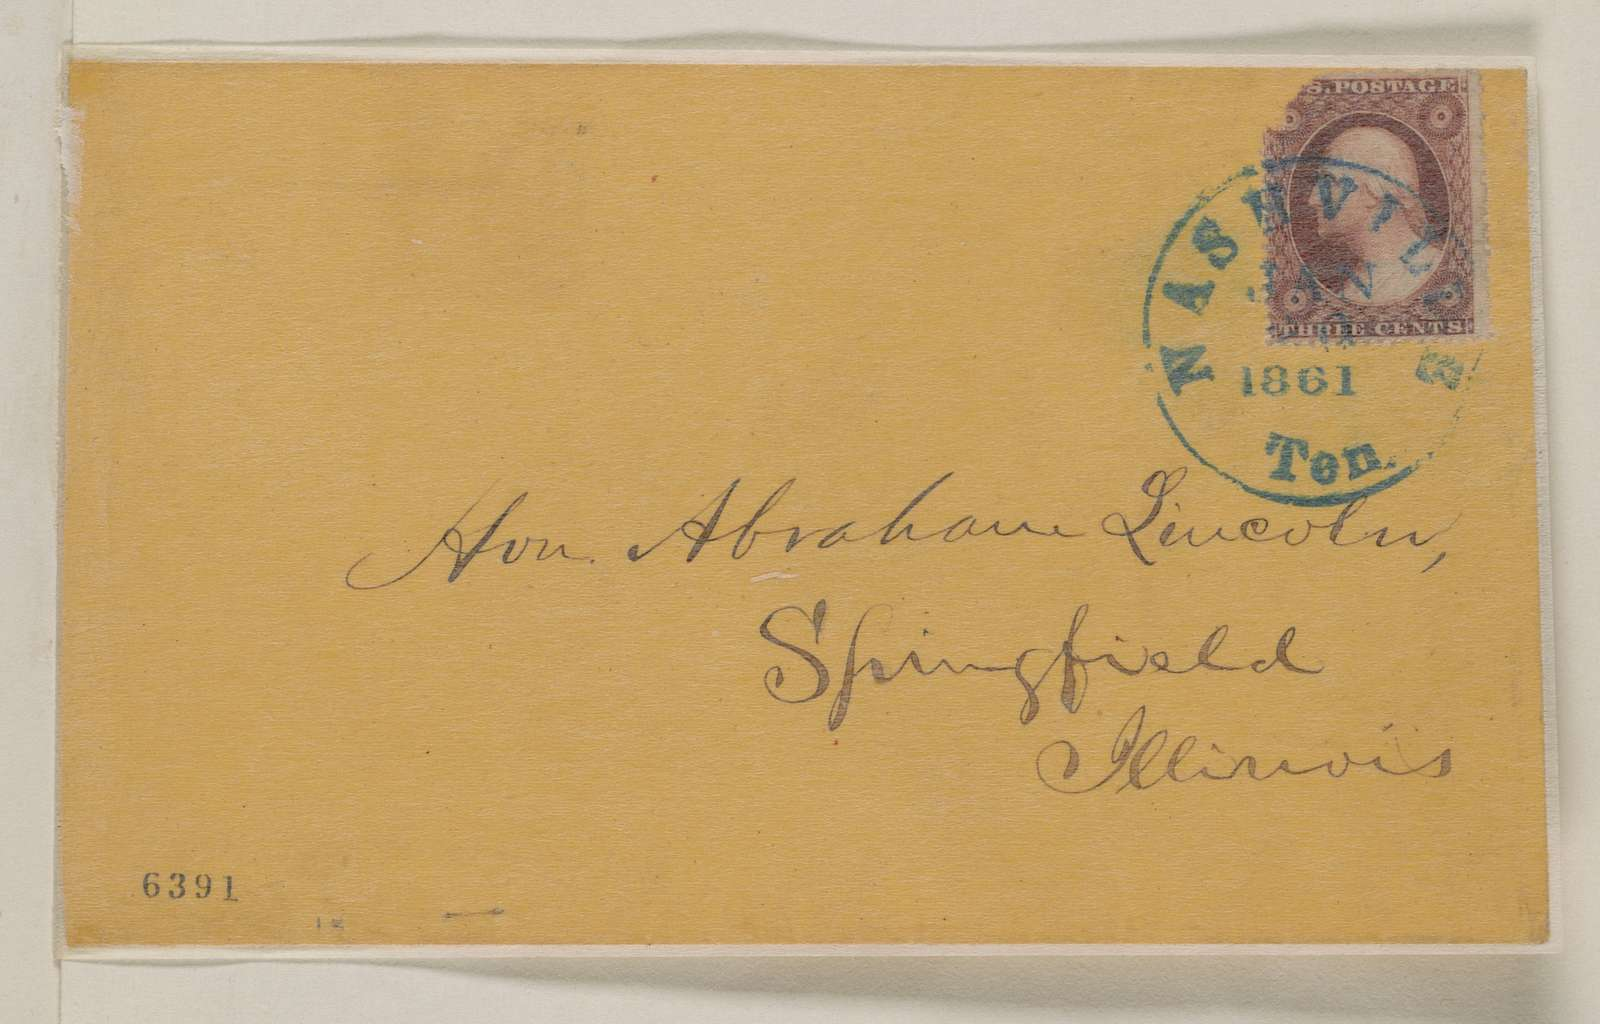 Abraham Lincoln papers: Series 1. General Correspondence. 1833-1916: Tennessee Legislature, Friday, January 18, 1861 (Printed Resolution)